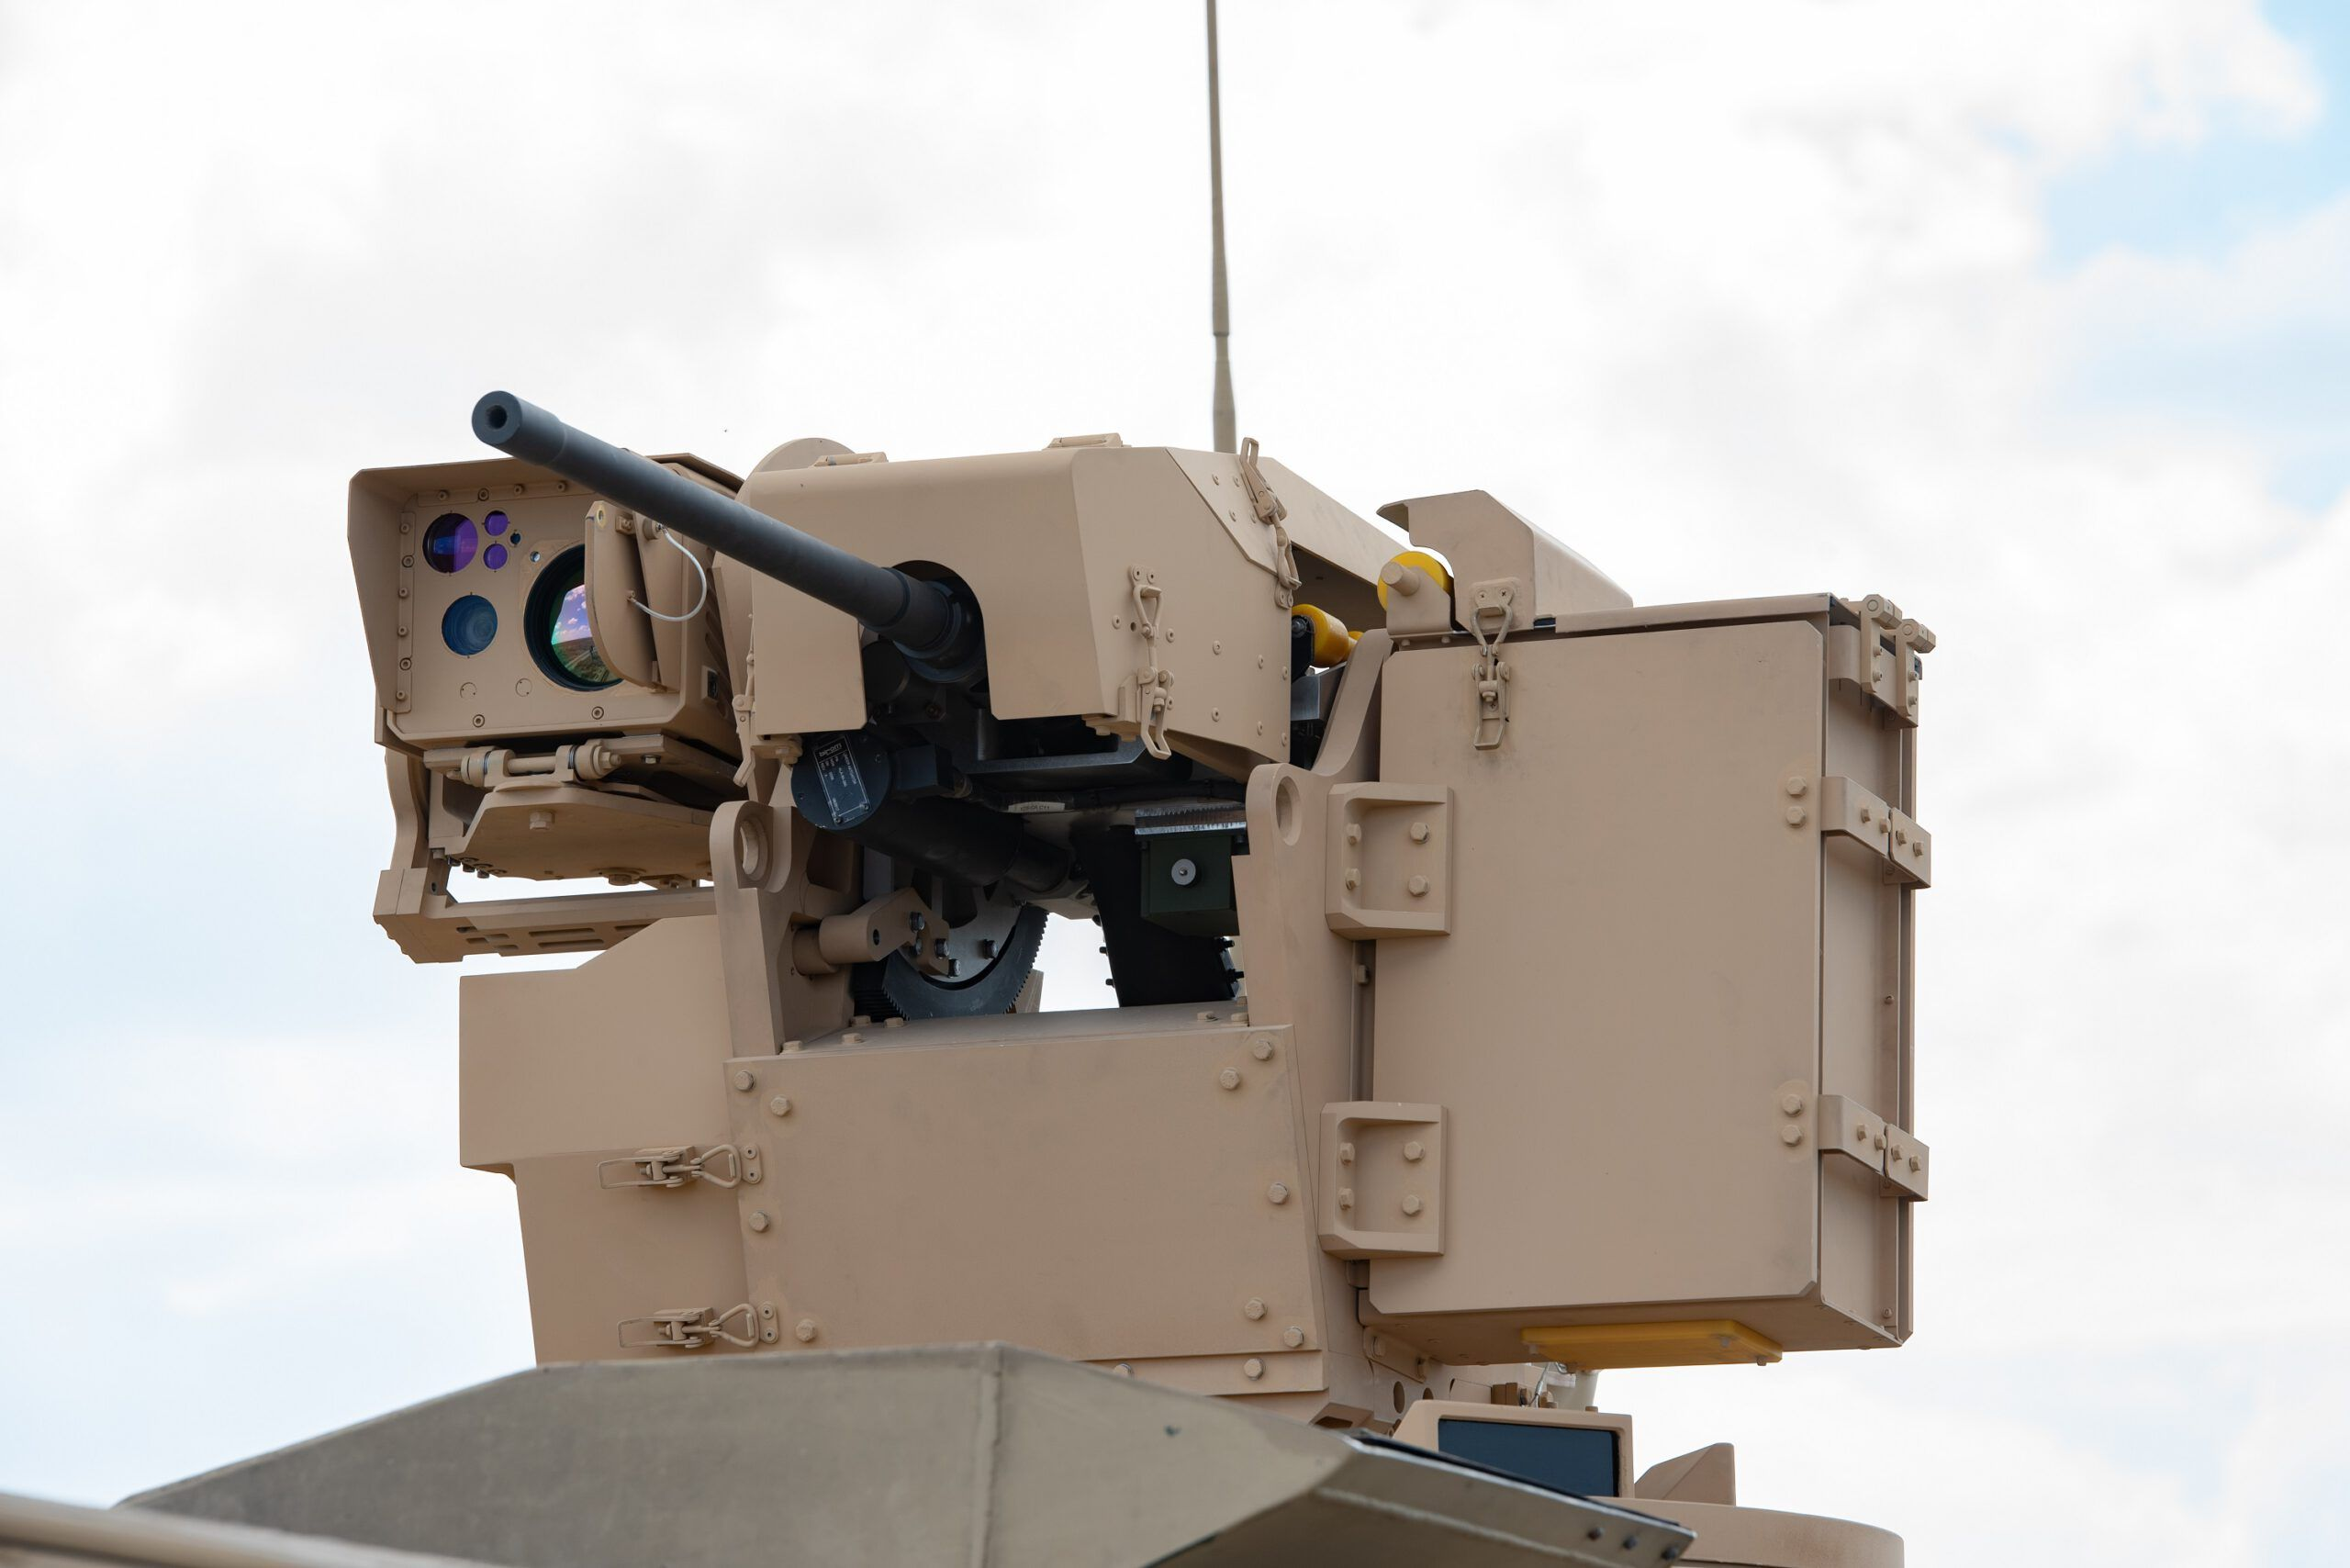 FNSS is displaying for the first time at IDEF'19 its new Remote-Controlled Weapon System (RCWS), which stands out in its class with distinctive technical specifications and ballistic protection. The qualification phase of the RCWS was completed in December 2018, and serial production was launched soon afterwards. The first customer of the system will be a foreign user.